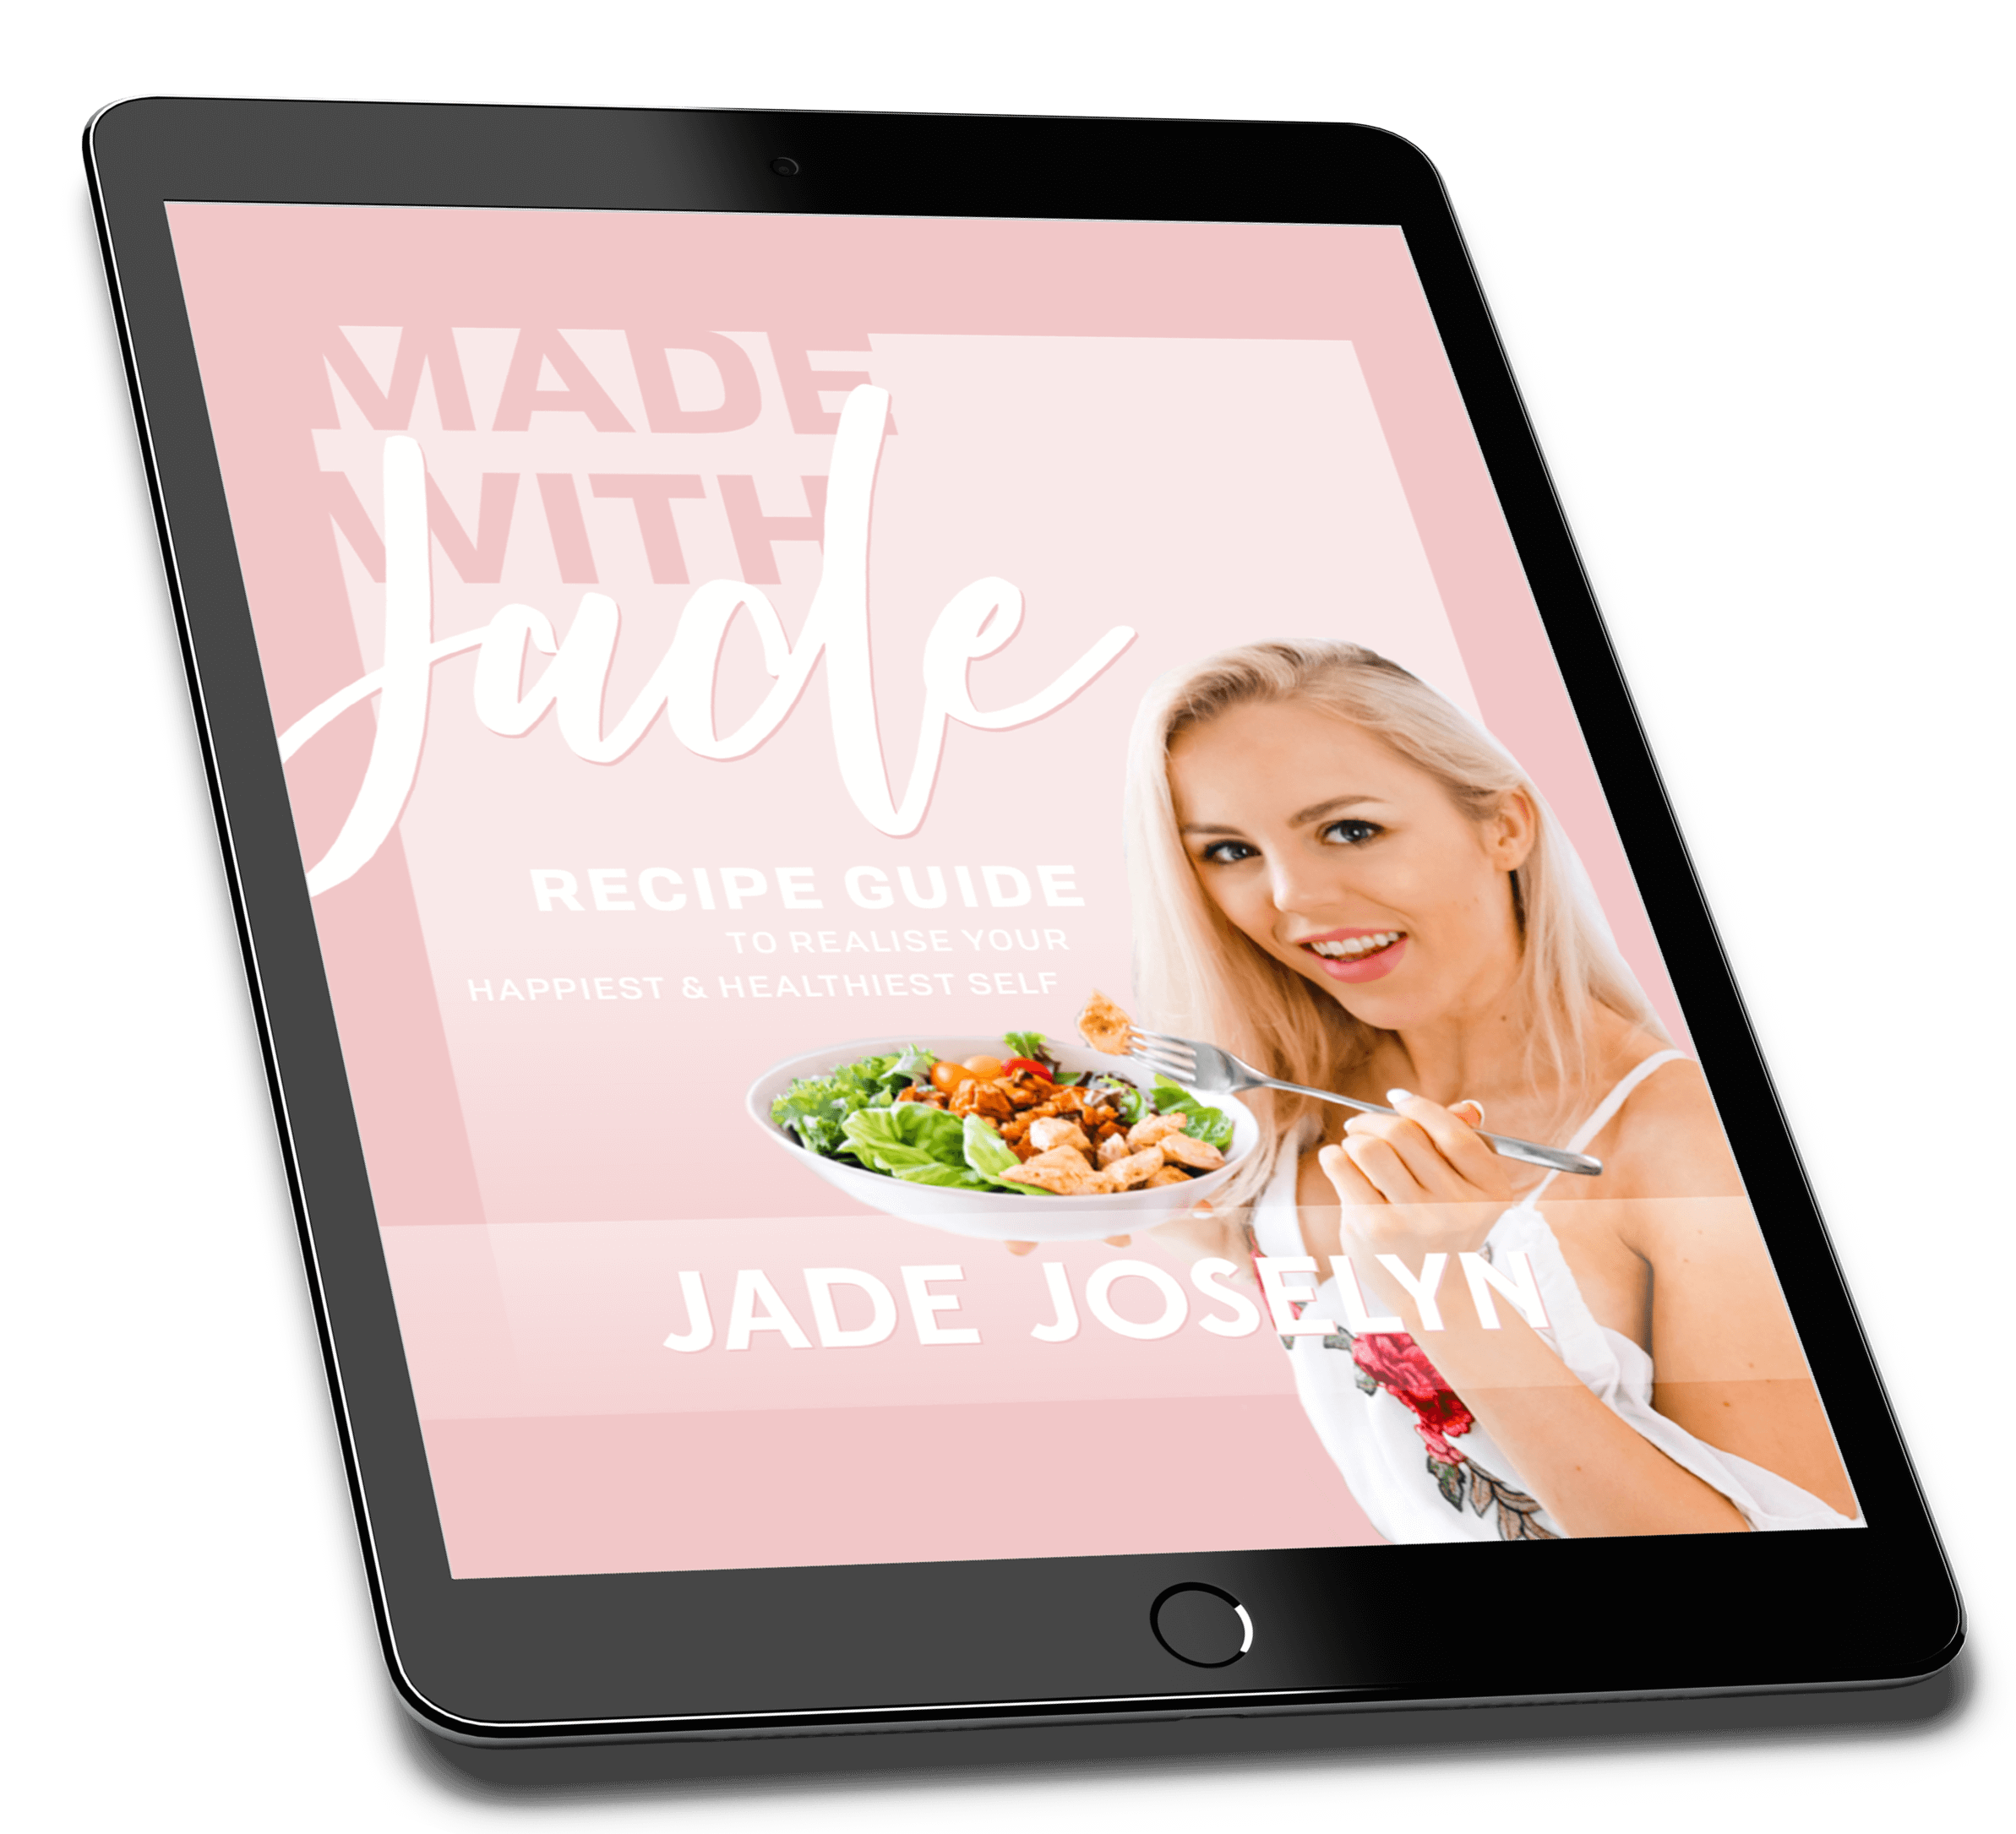 Jade Joselyn | Made With Jade Recipe Guide